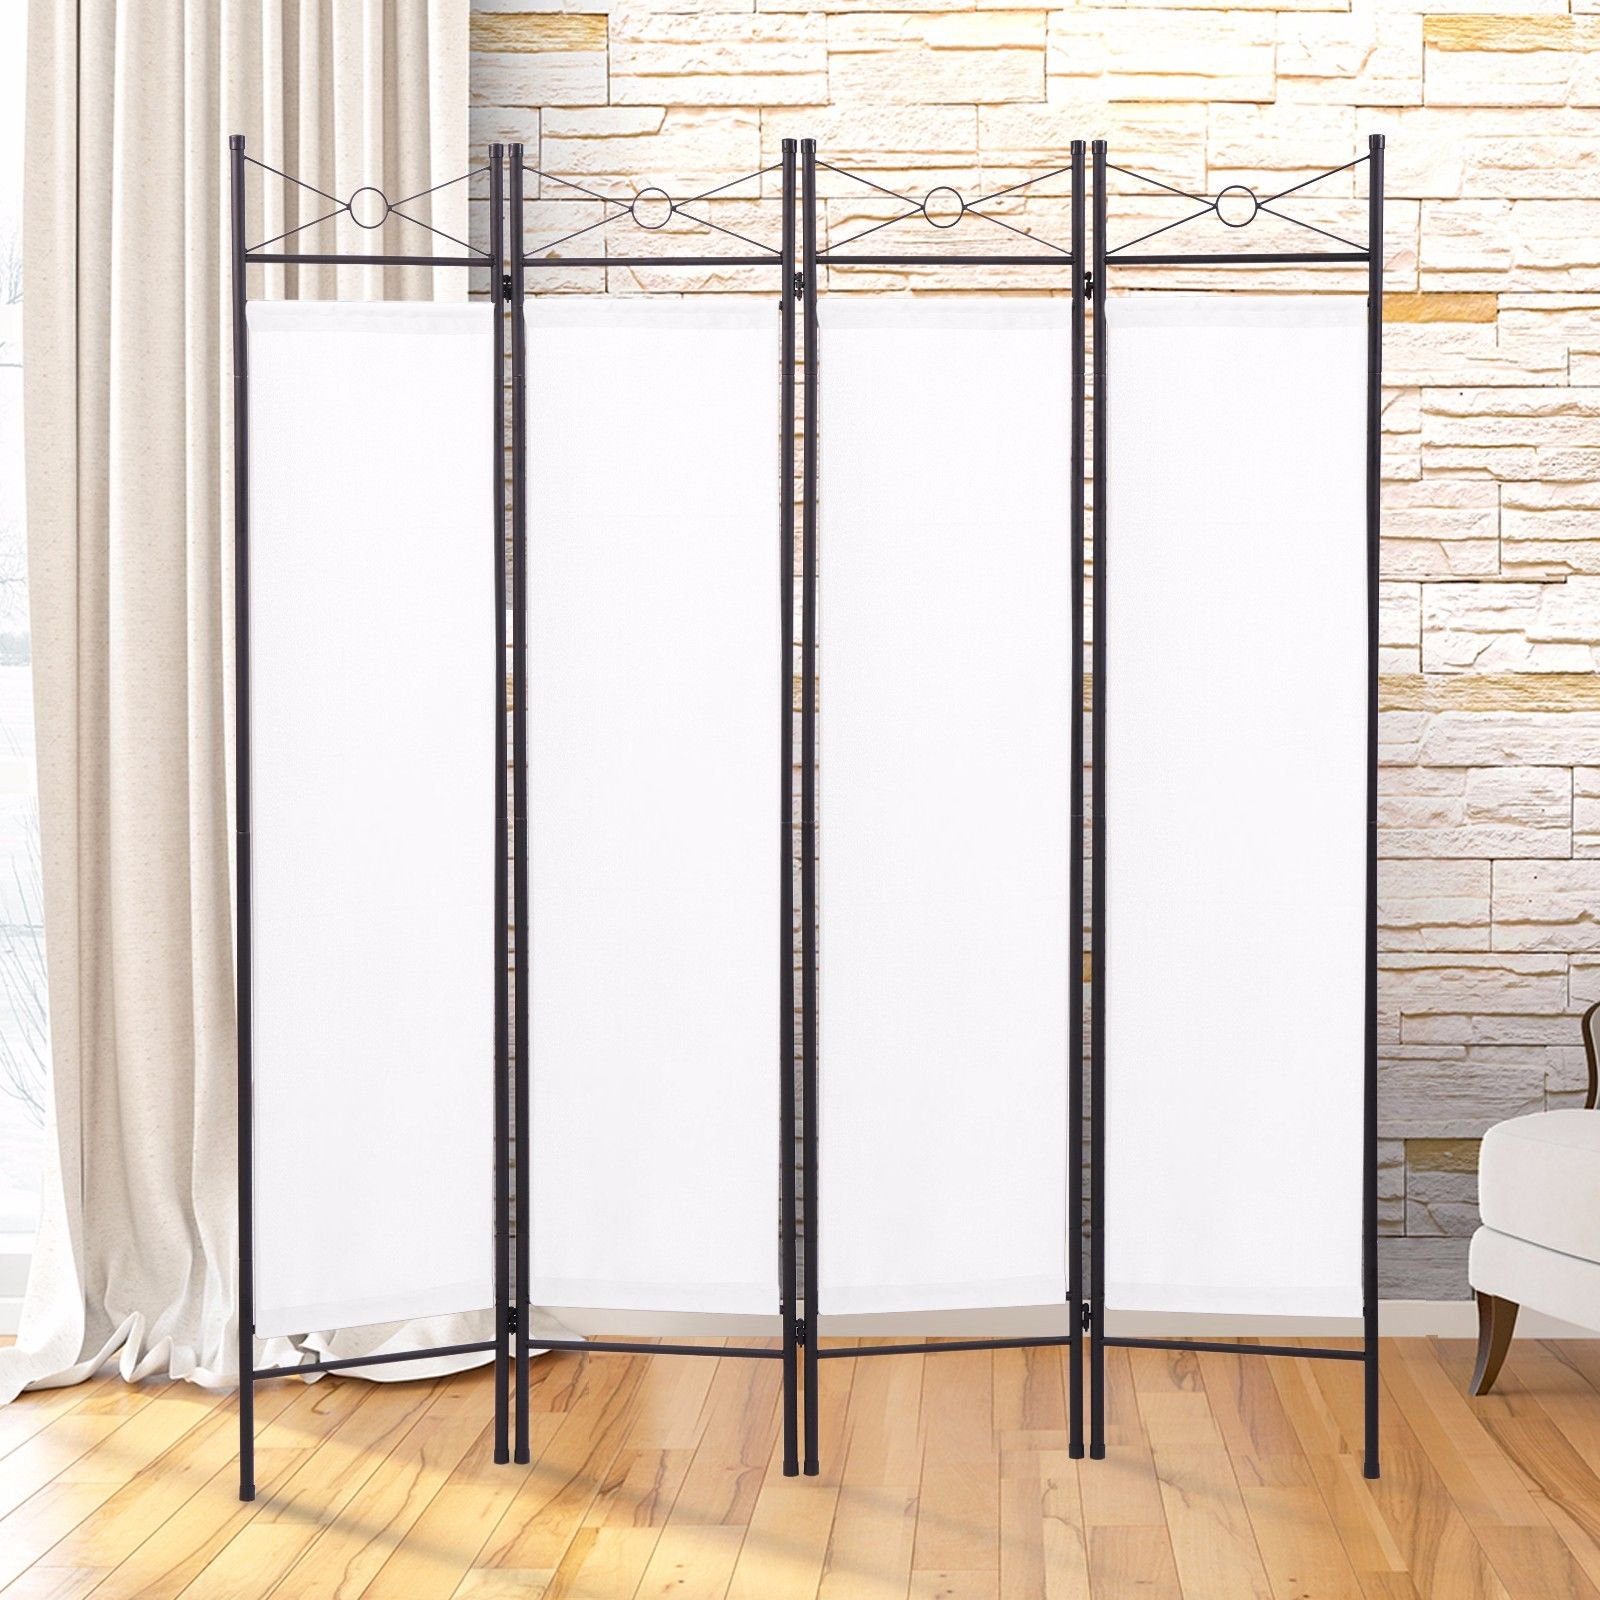 Lazymoon 4 Panel Steel Room Divider Screen Fabric Folding Partition Home  Office Privacy Screen White